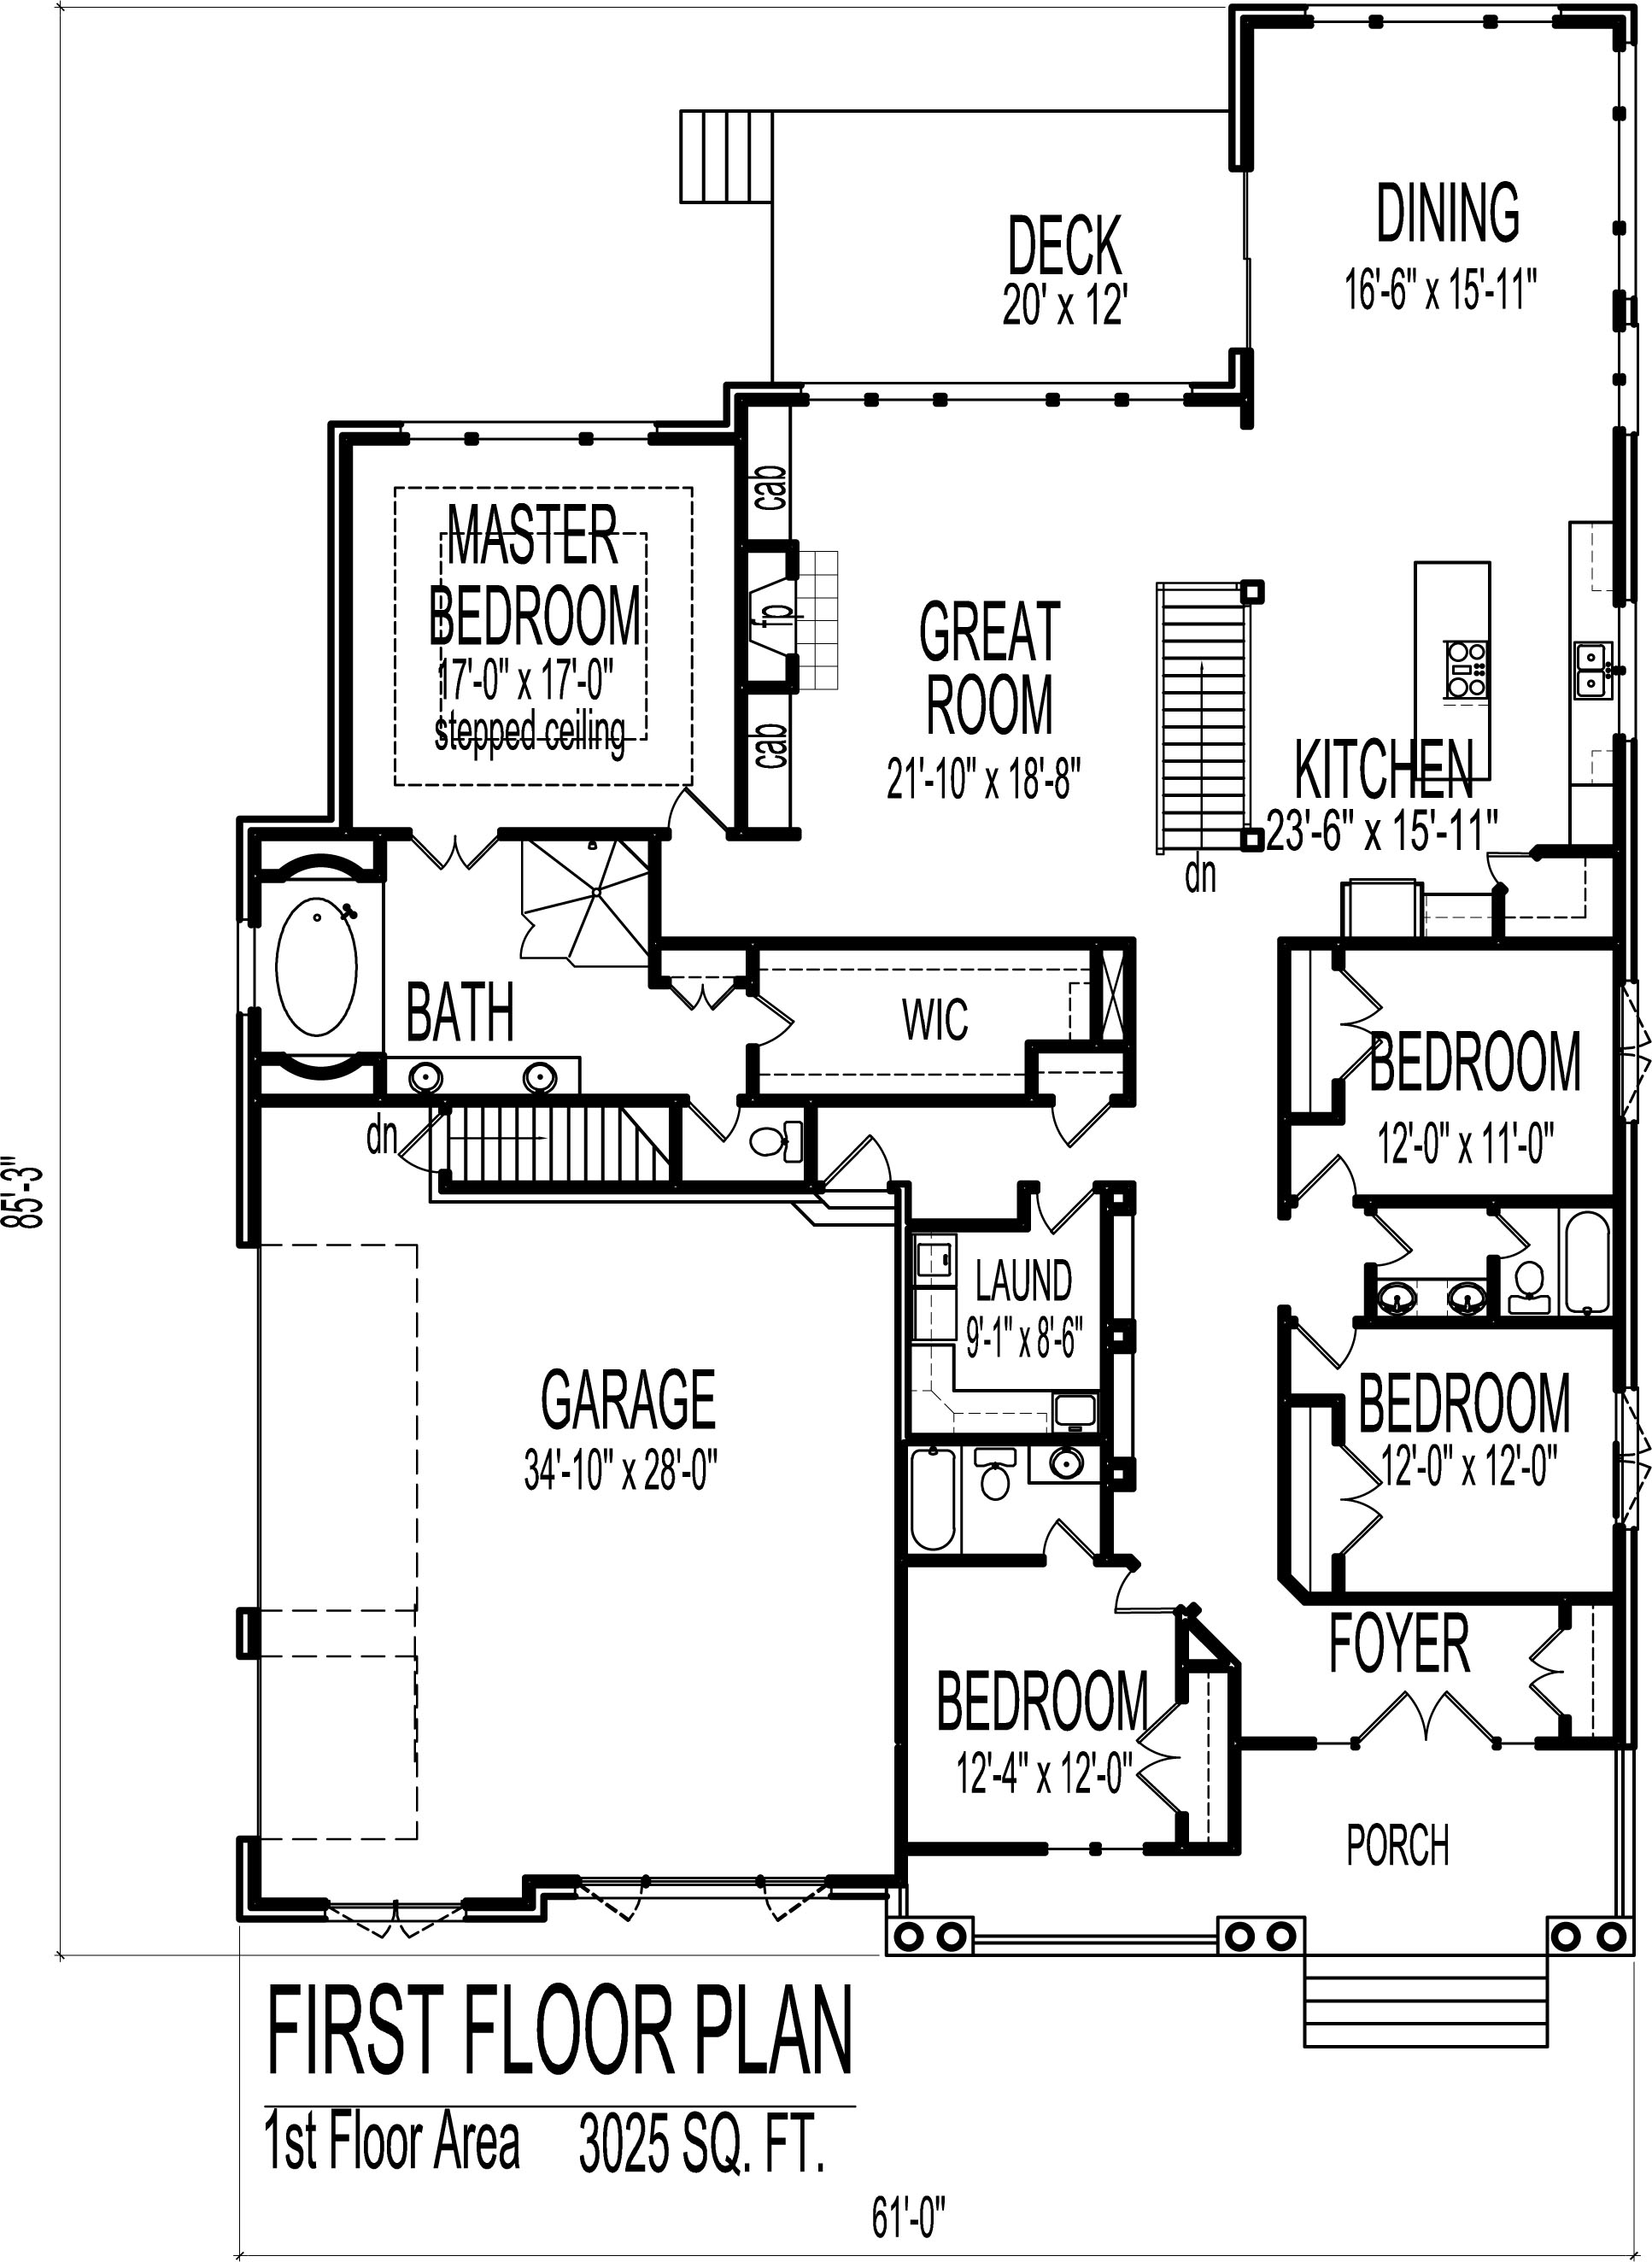 English Cottage House Floor Plans European 4 Bedroom 1 Story ... on ranch home plans with carport, ranch home plans with large kitchen, ranch home plans with pool, ranch home plans with hearth rooms, log home with 4 car garage, ranch home plans with office,